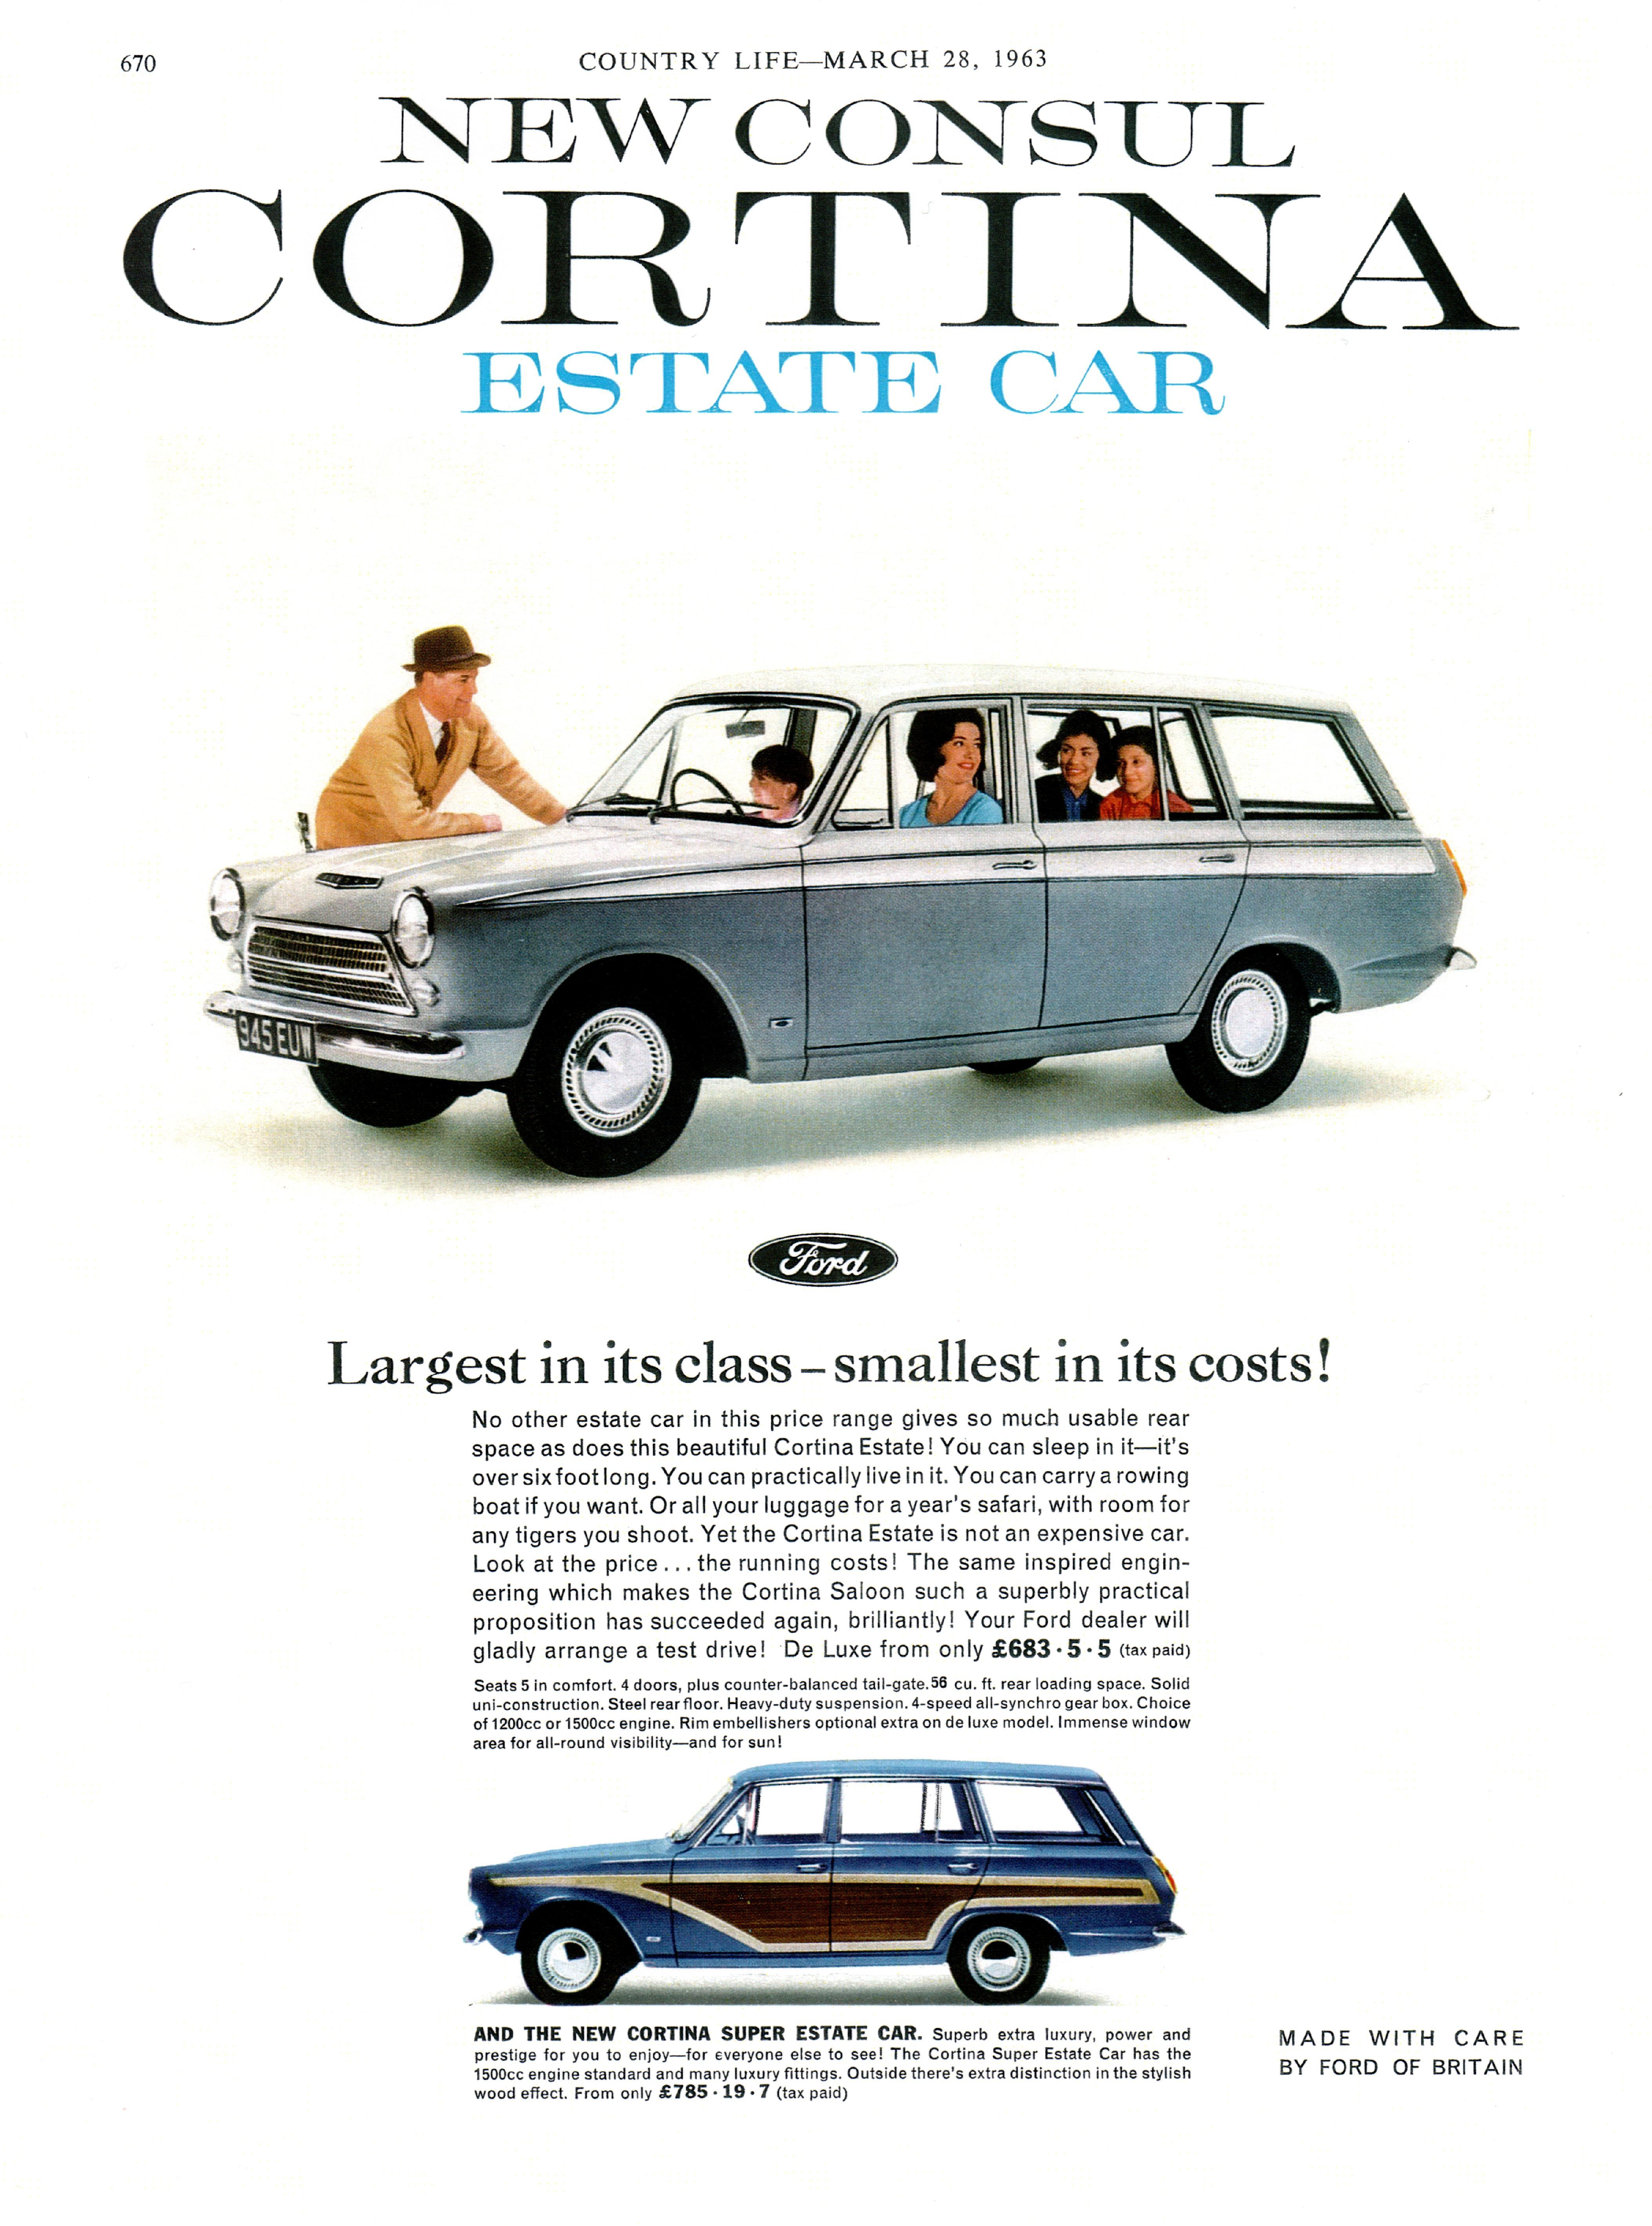 The 1963 Ford Consul Cortina Estate Car. Originally, the Cortina was to be called the Ford Consul 225, but the car was launched as the Consul Cortina until a modest facelift in 1964, after which it was sold simply as the Cortina.